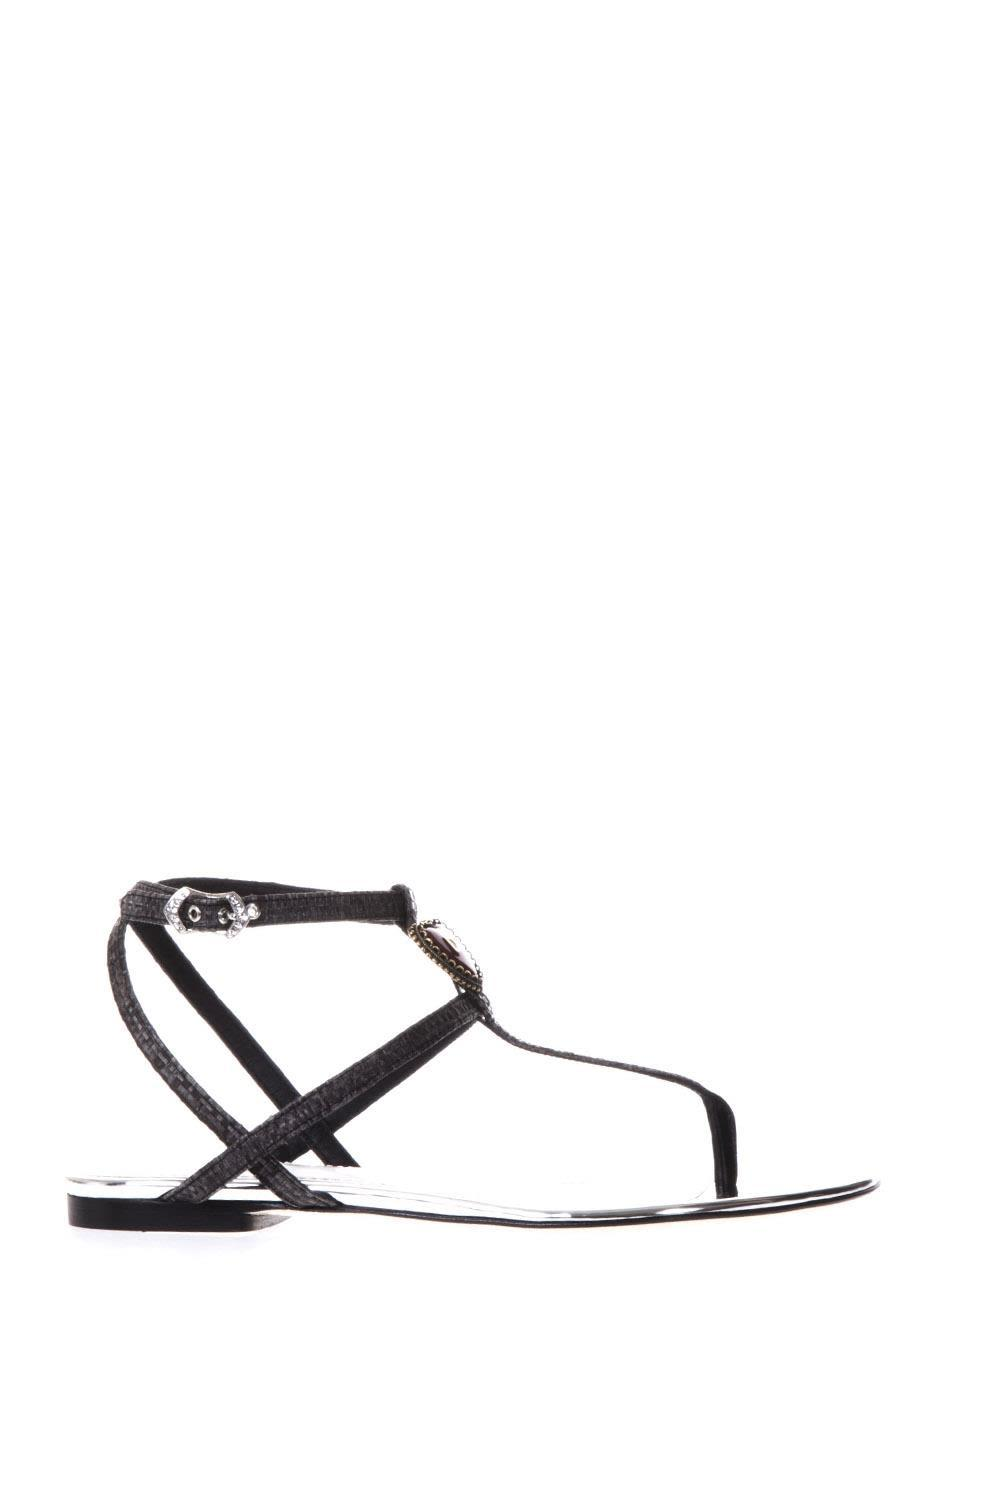 Dolce & Gabbana Black And Silver Sandals With  Logo In Black-silver